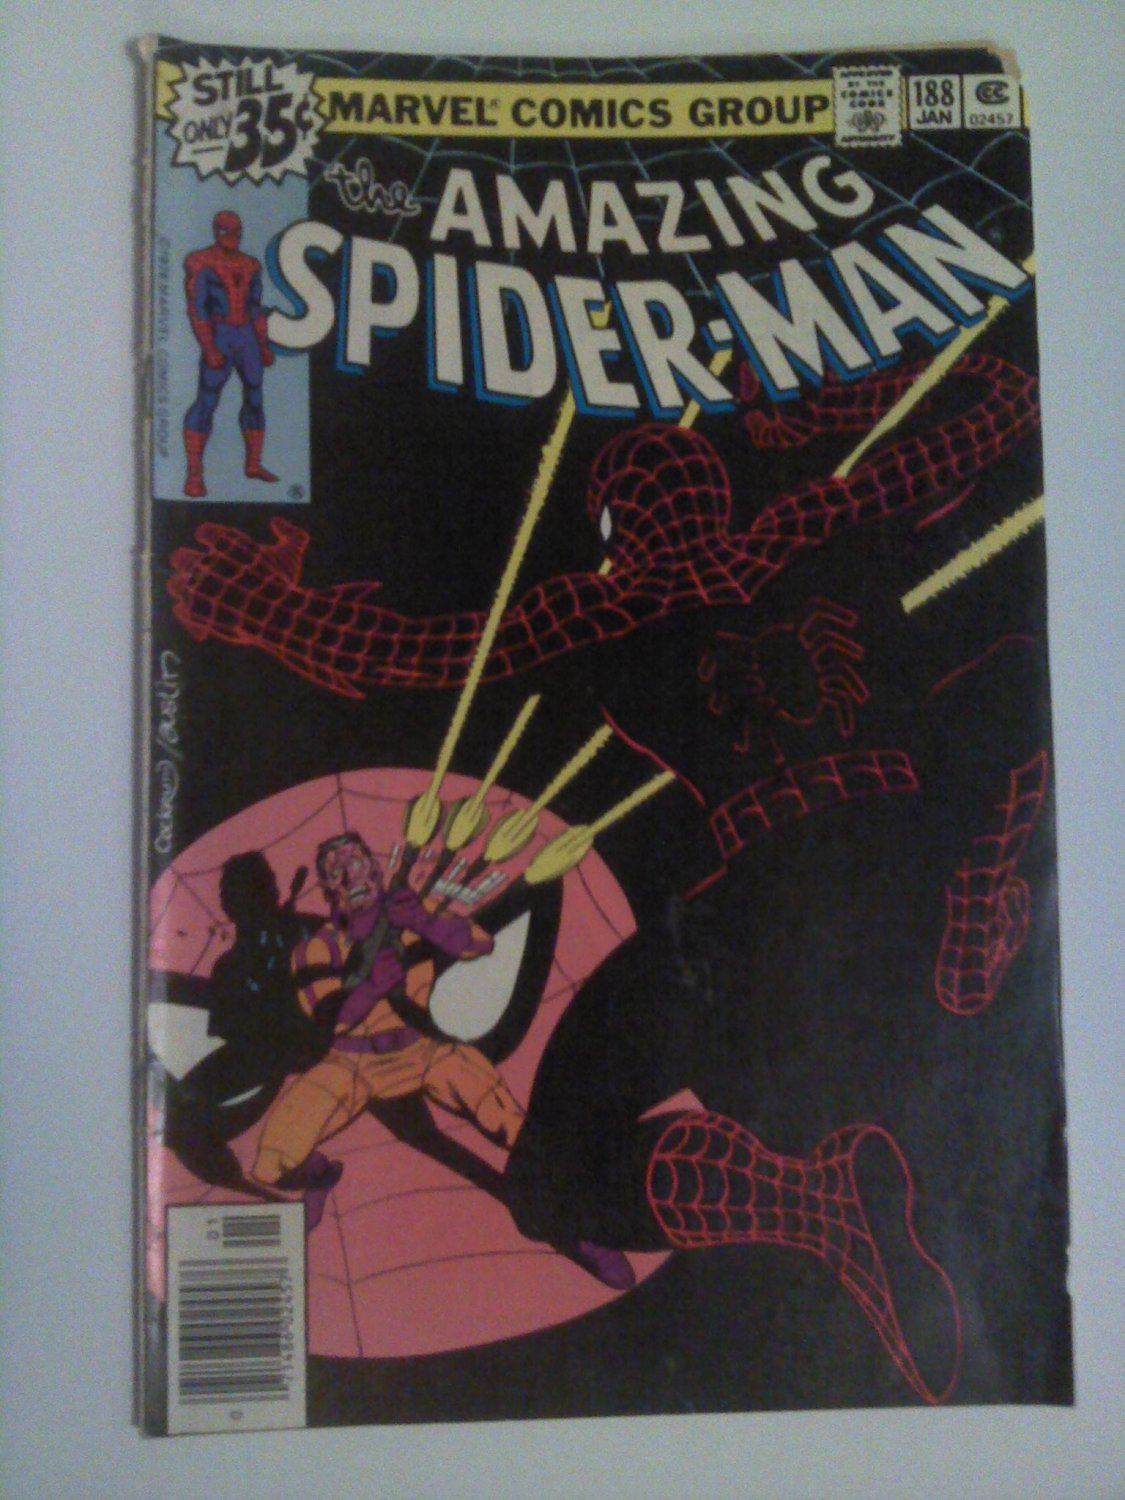 Marvel Tales #106 Starring Spider-Man and The Punisher - YouTube